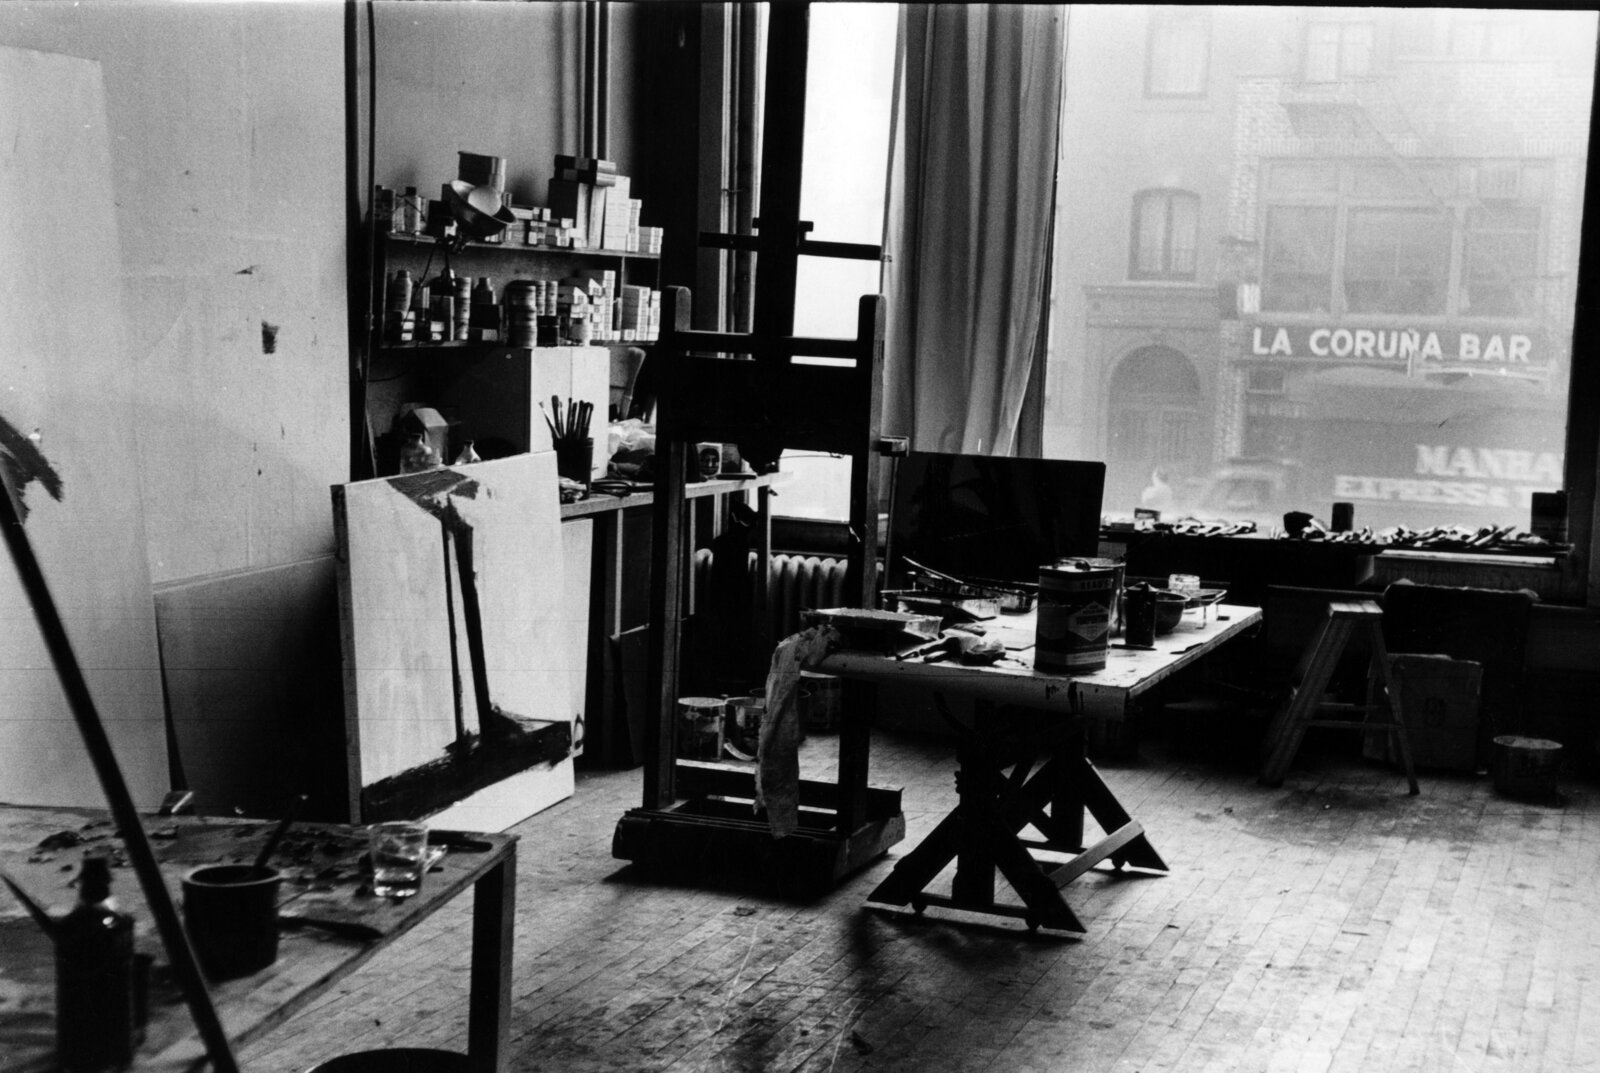 Franz Kline's New York City loft, 1961  Photo 2 of 2 in The Lofting of America